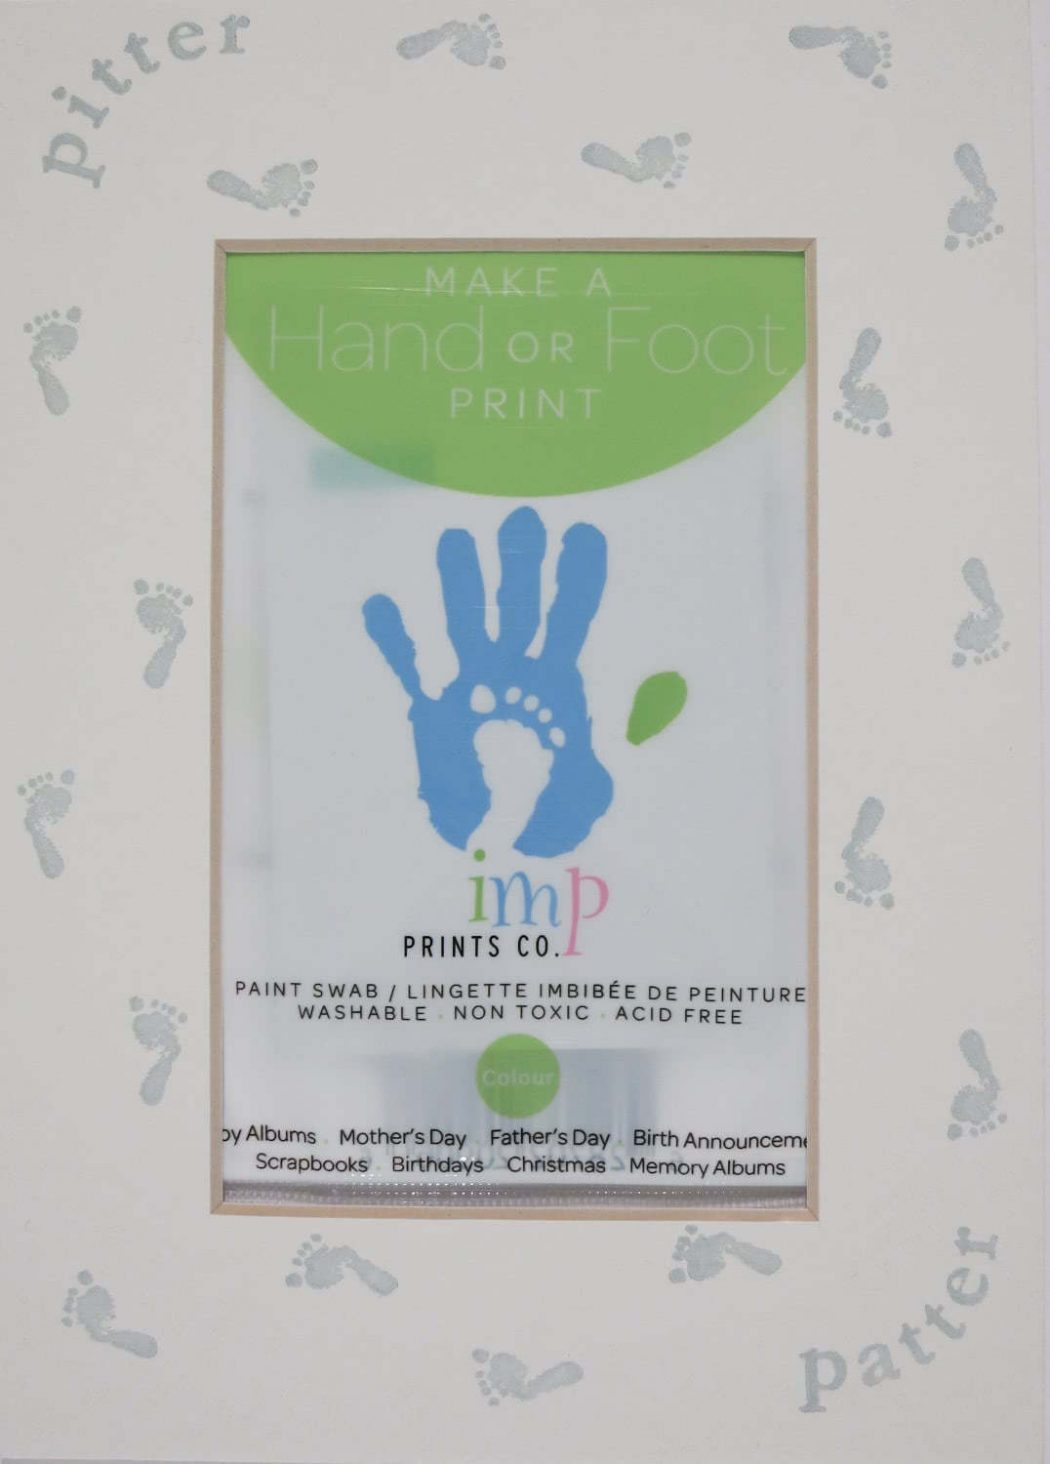 Green Footprint Mat Kit, Printed